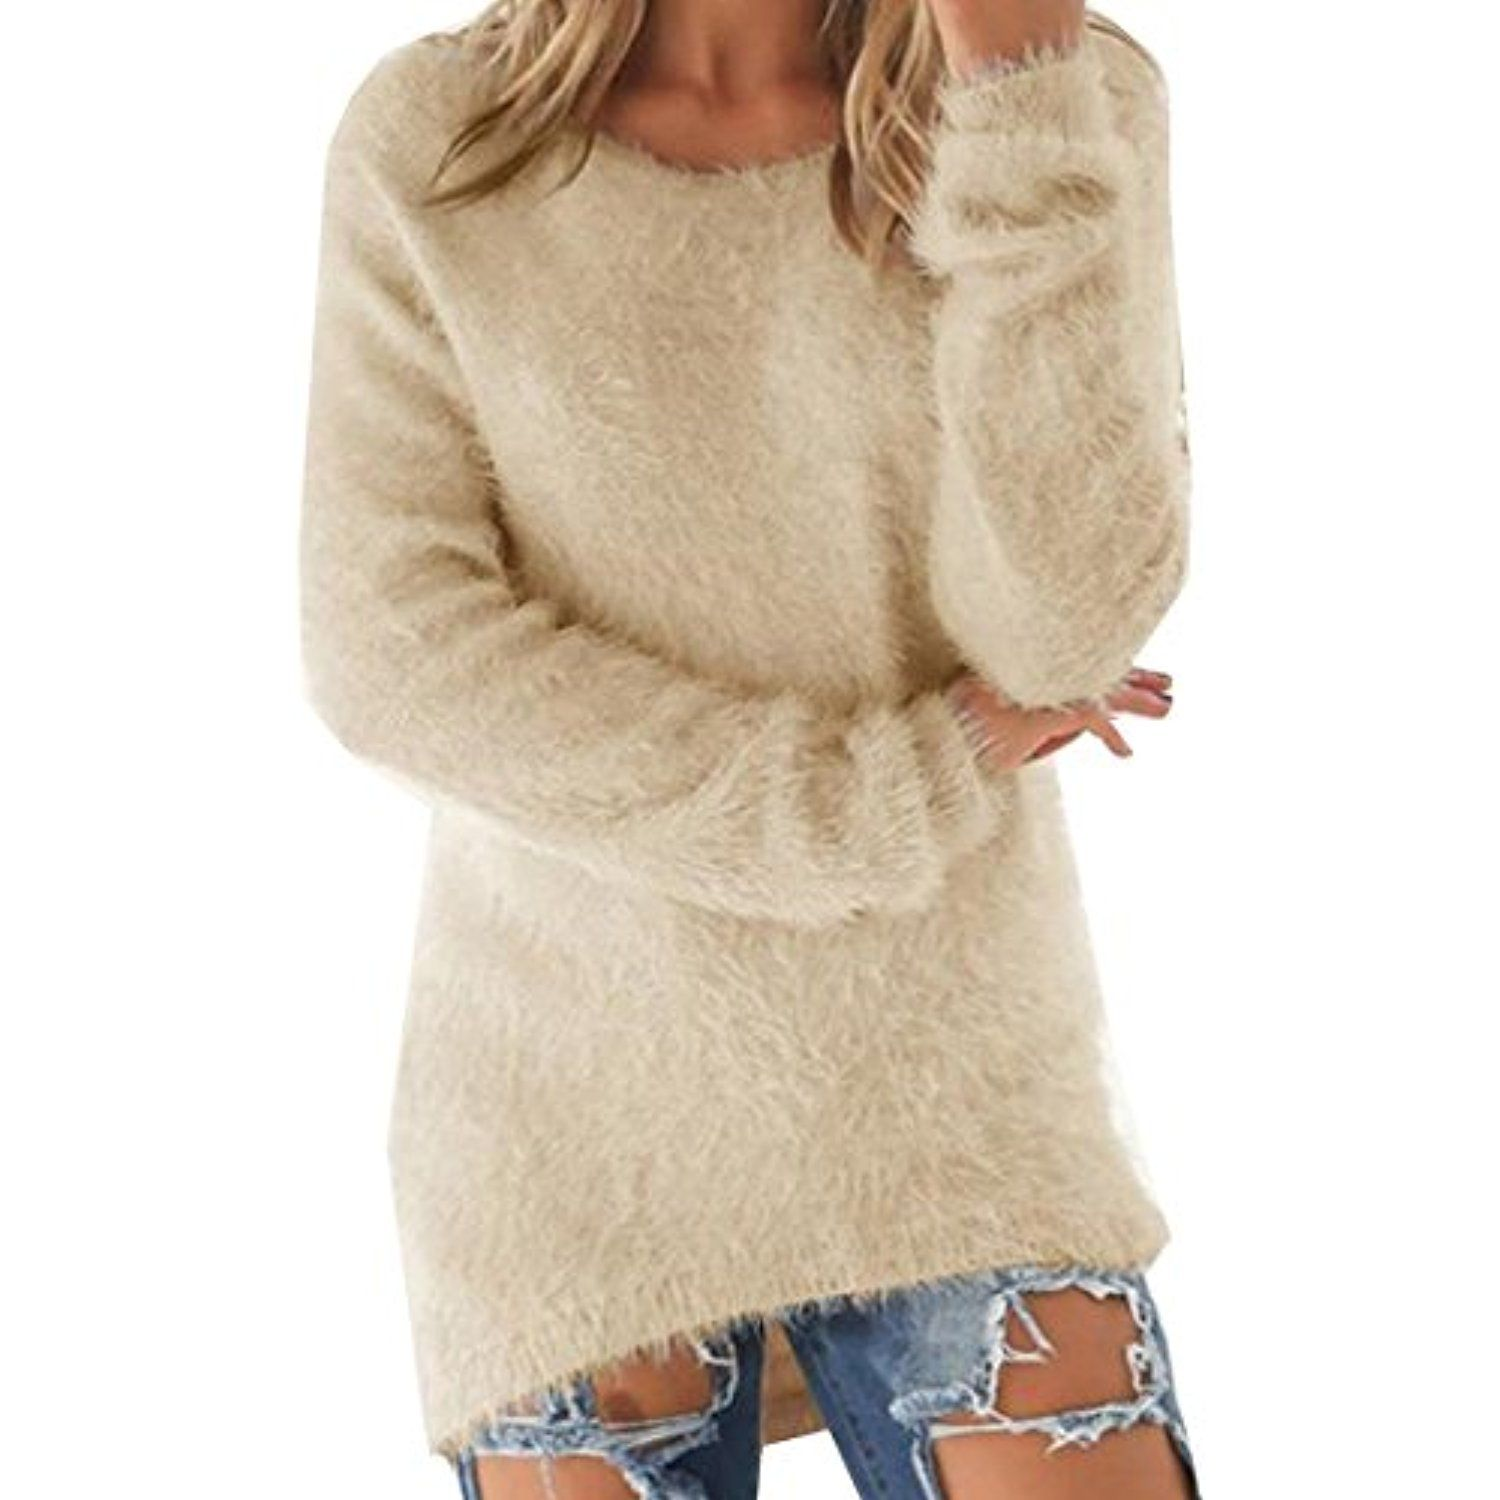 Women's Solid Loose Stylish Comfy Pullover Sweater Outwear ...